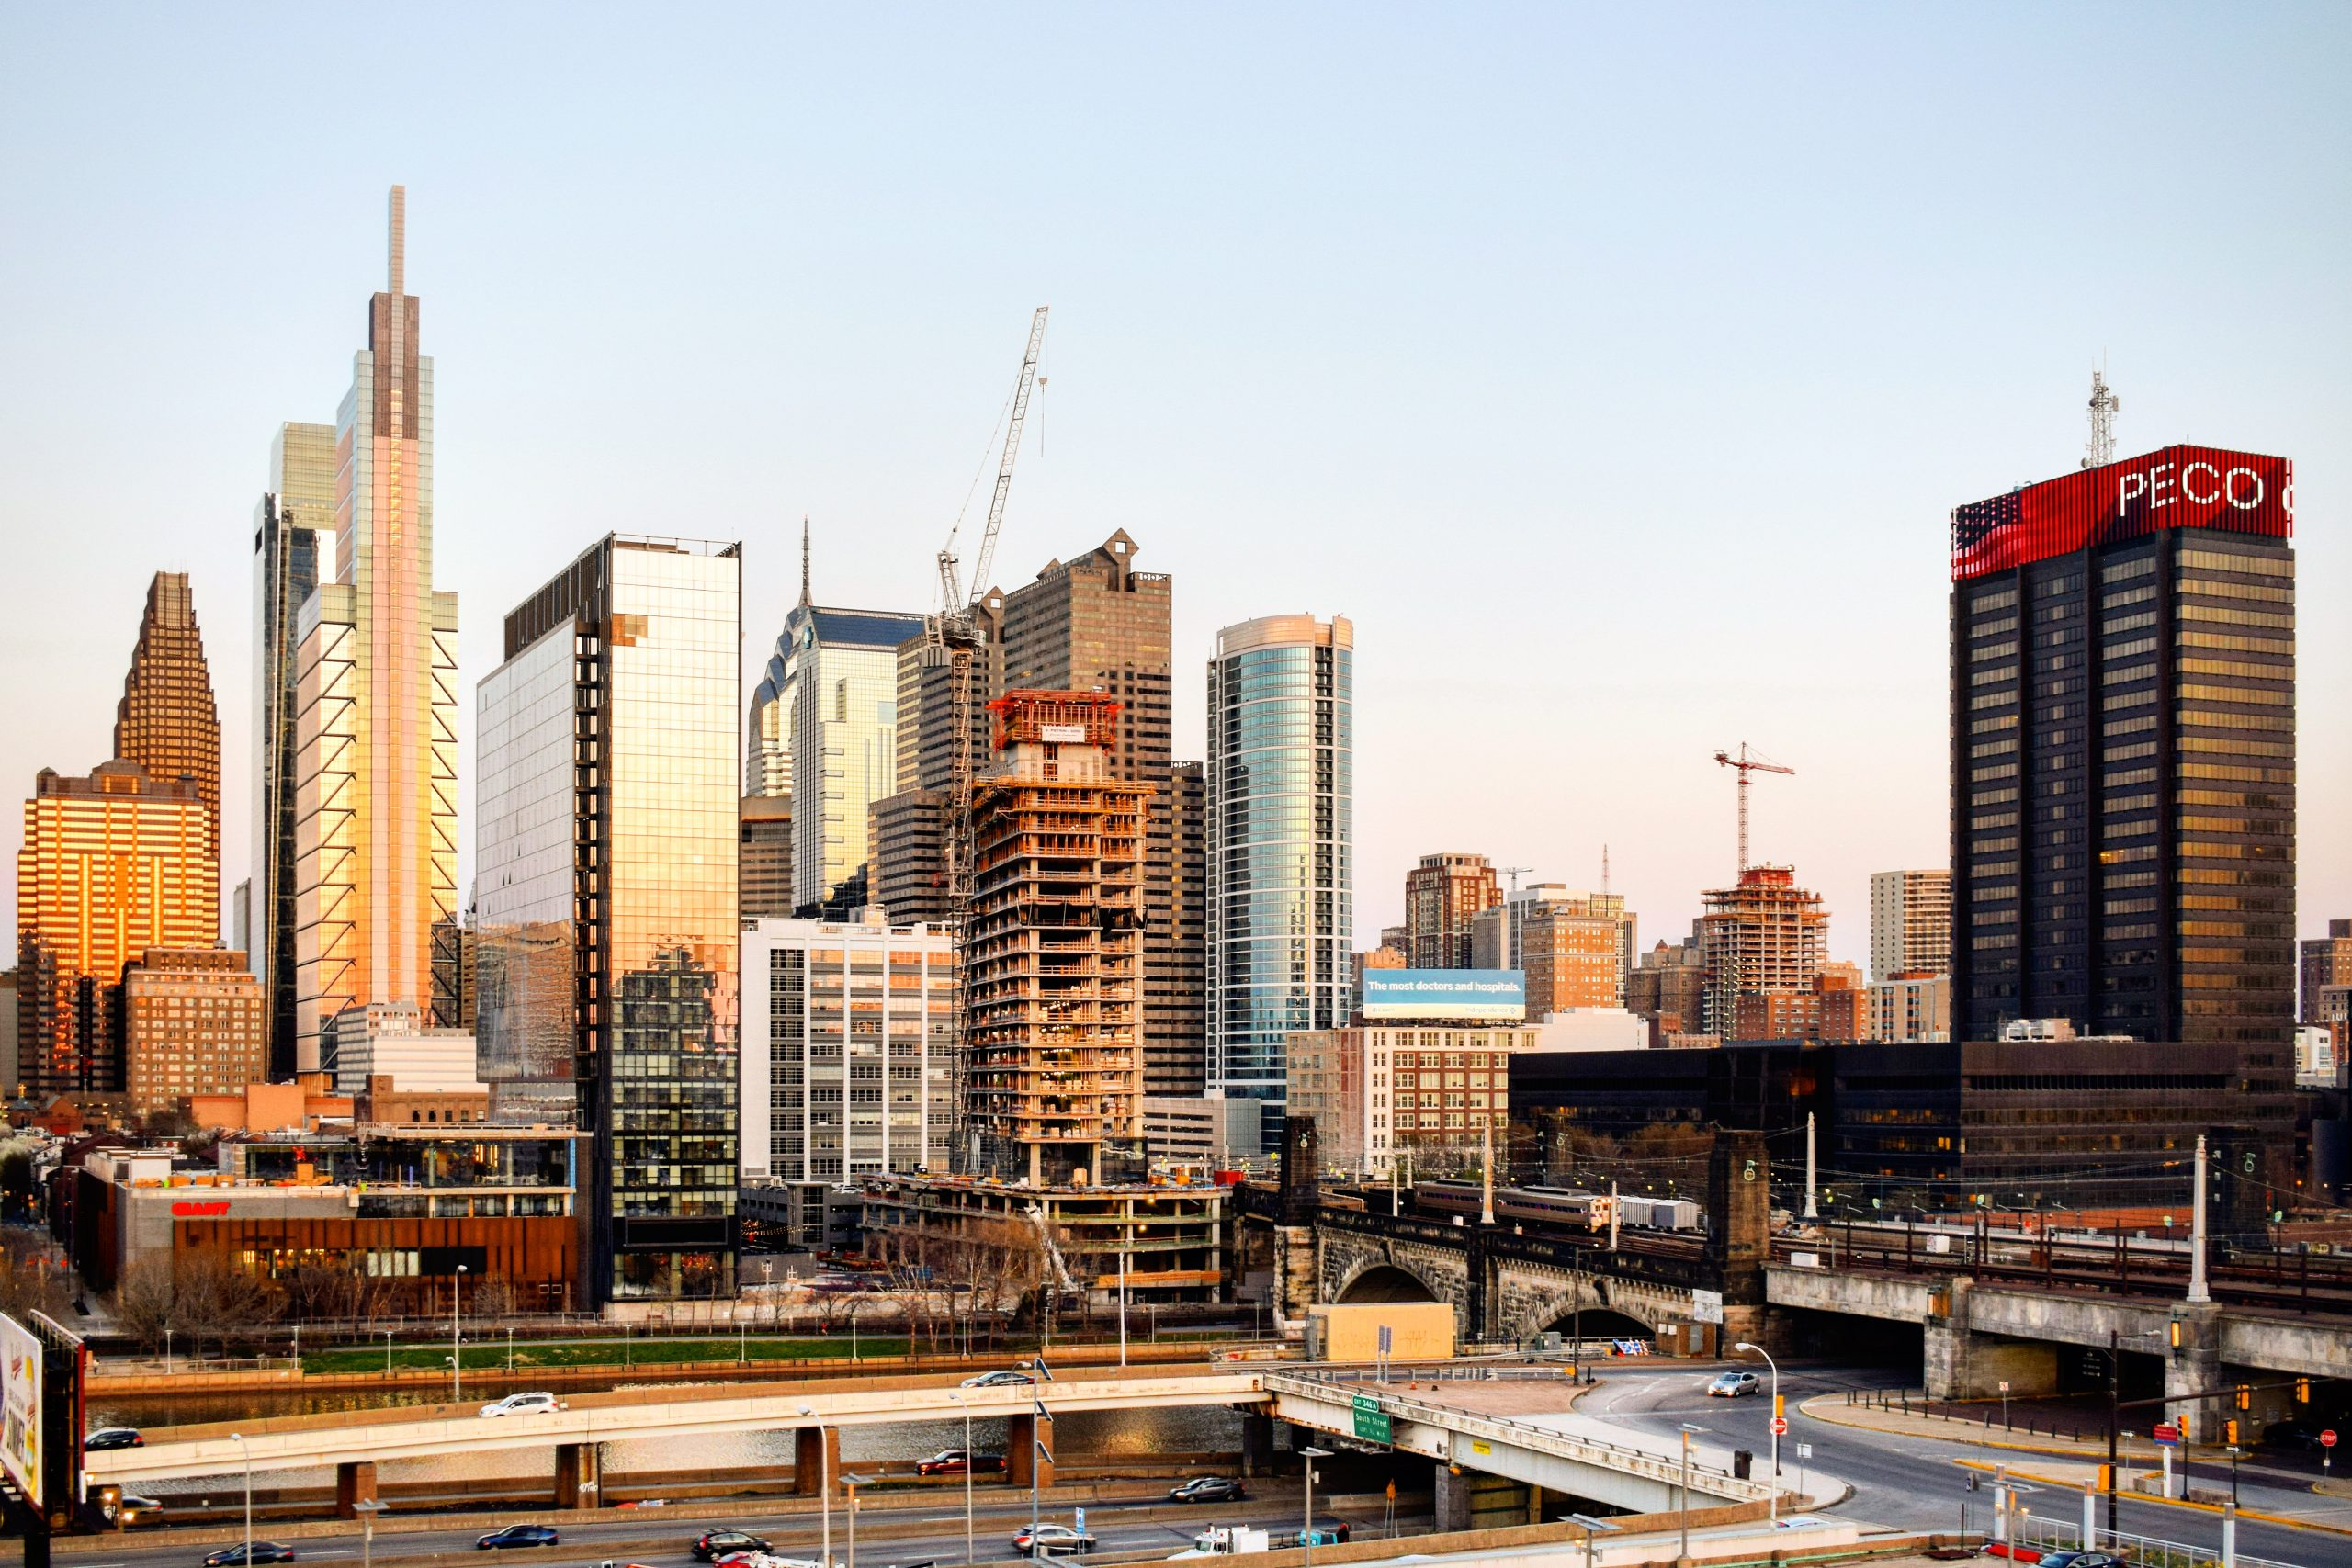 Riverwalk south and north in the Philadelphia skyline from a garage looking east. Photo by Thomas Koloski